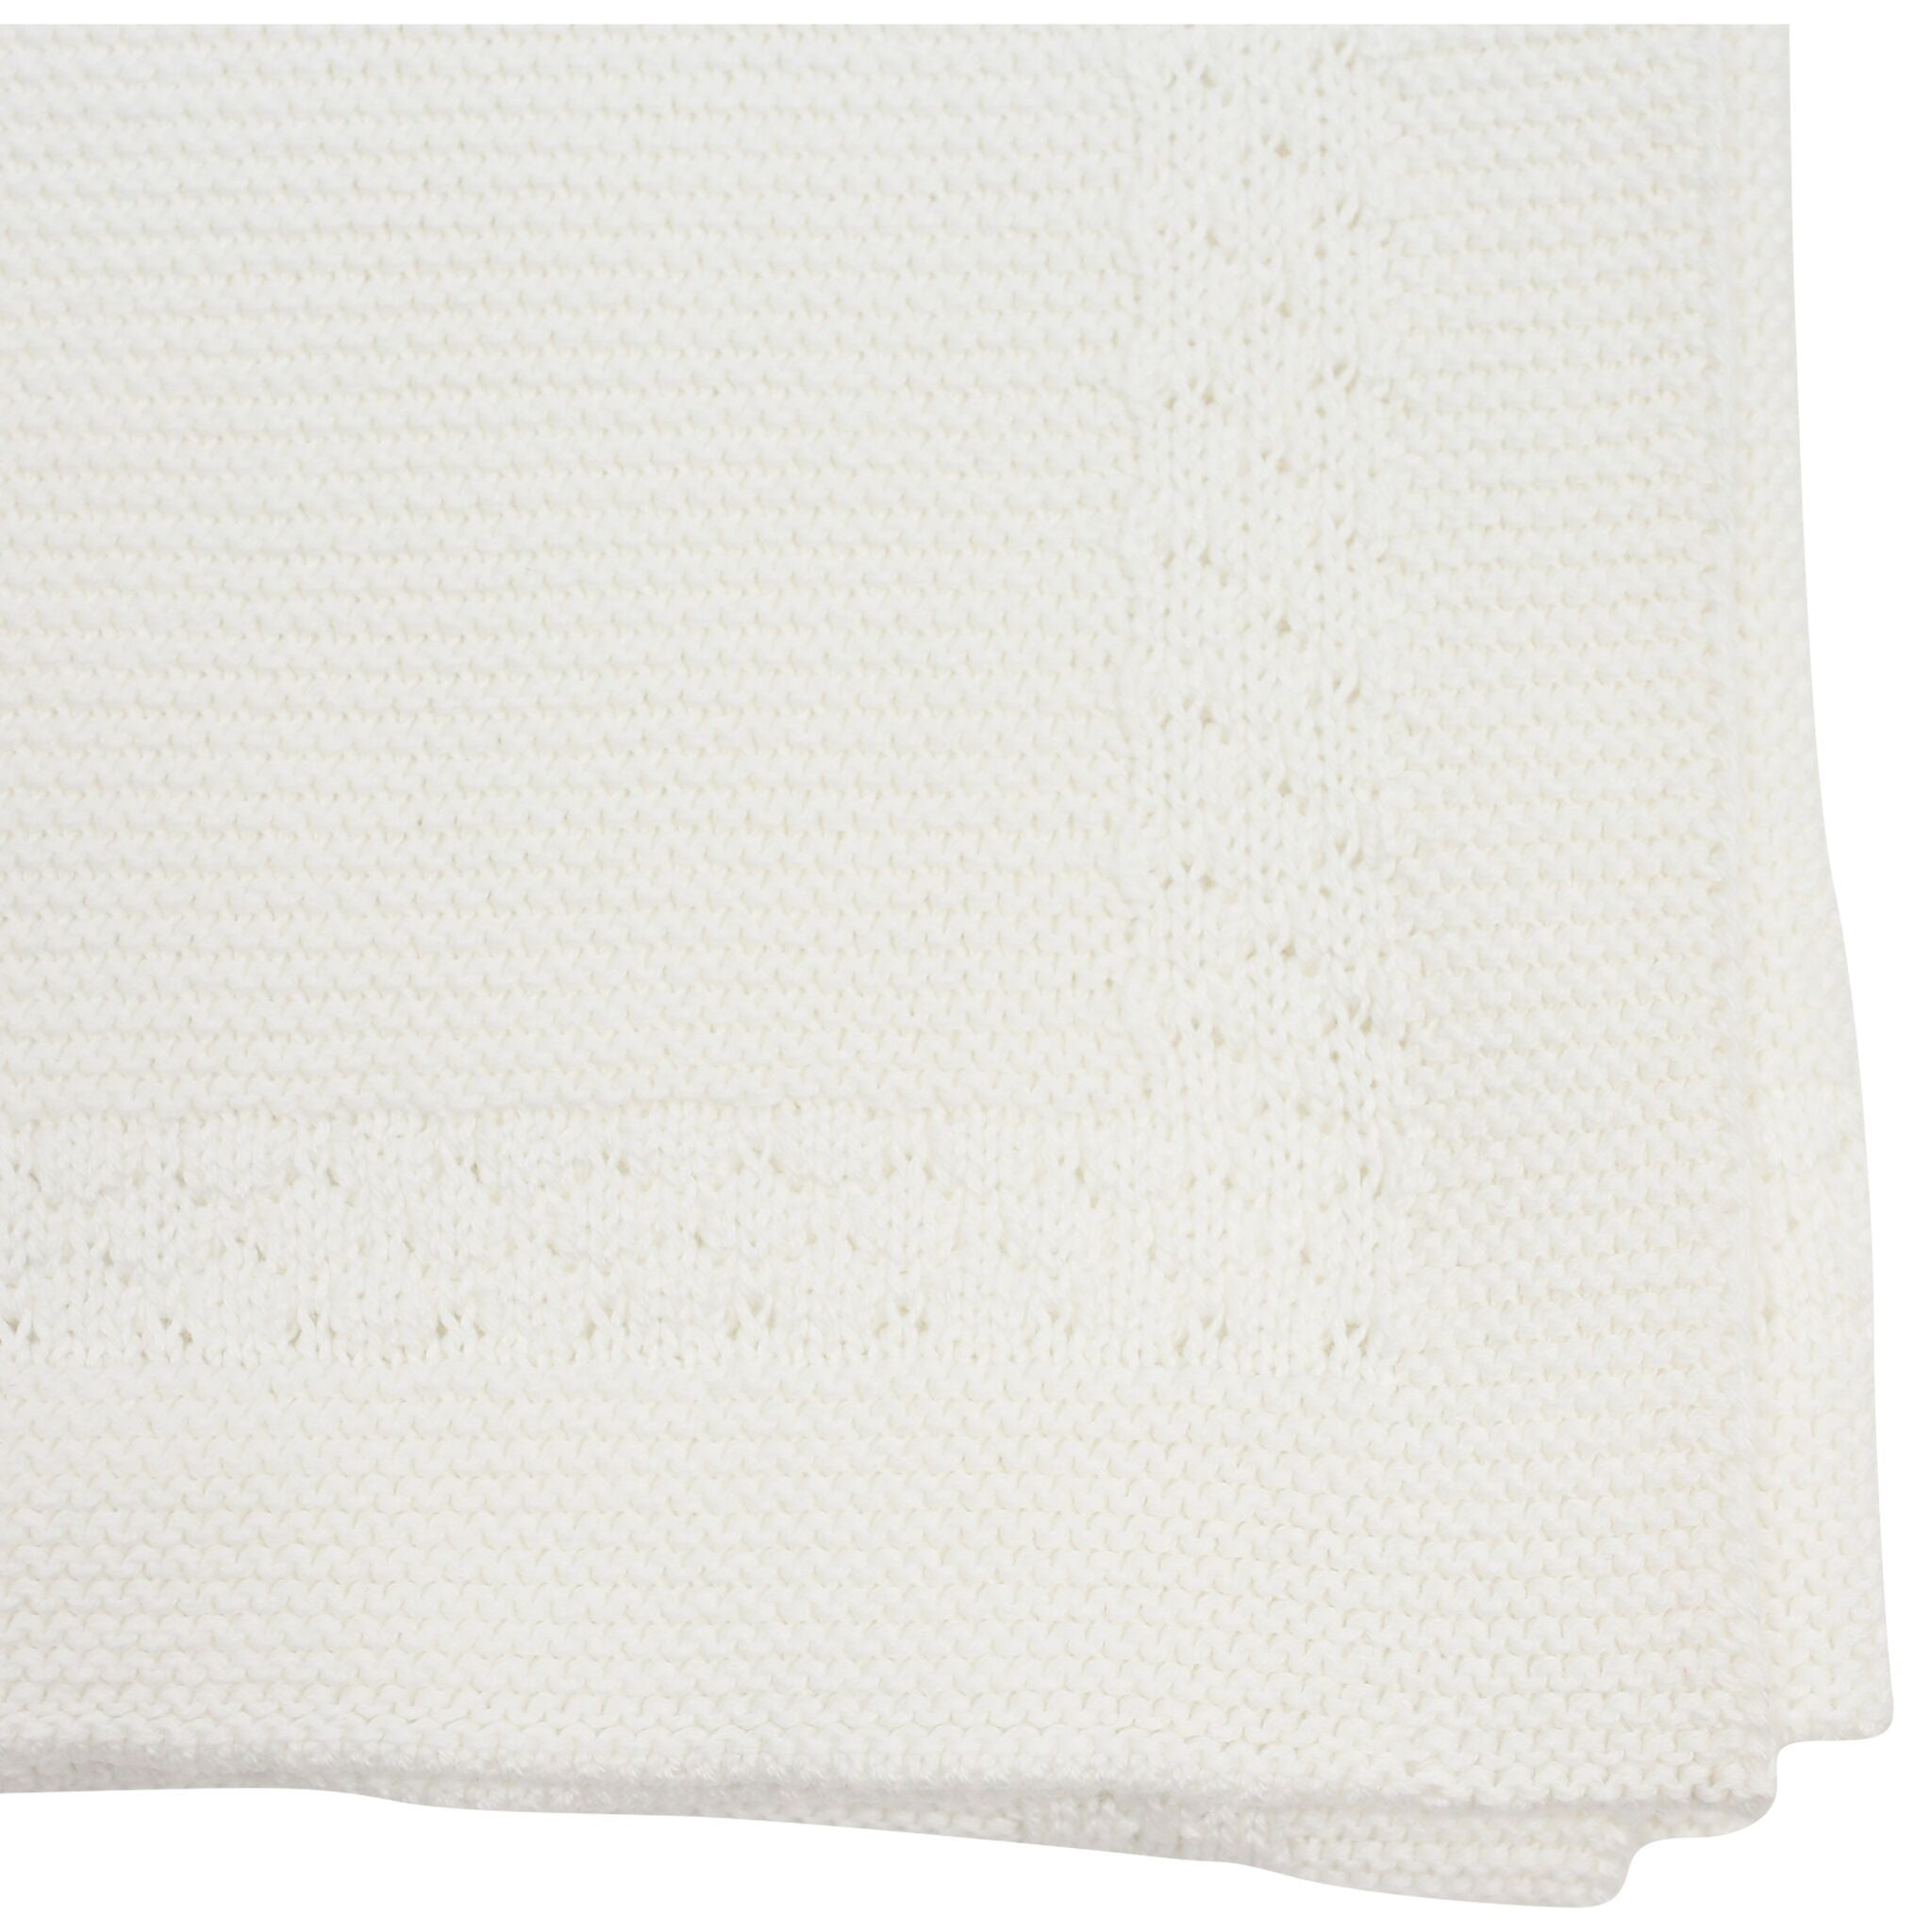 Korango Links Knit Blanket - Ivory